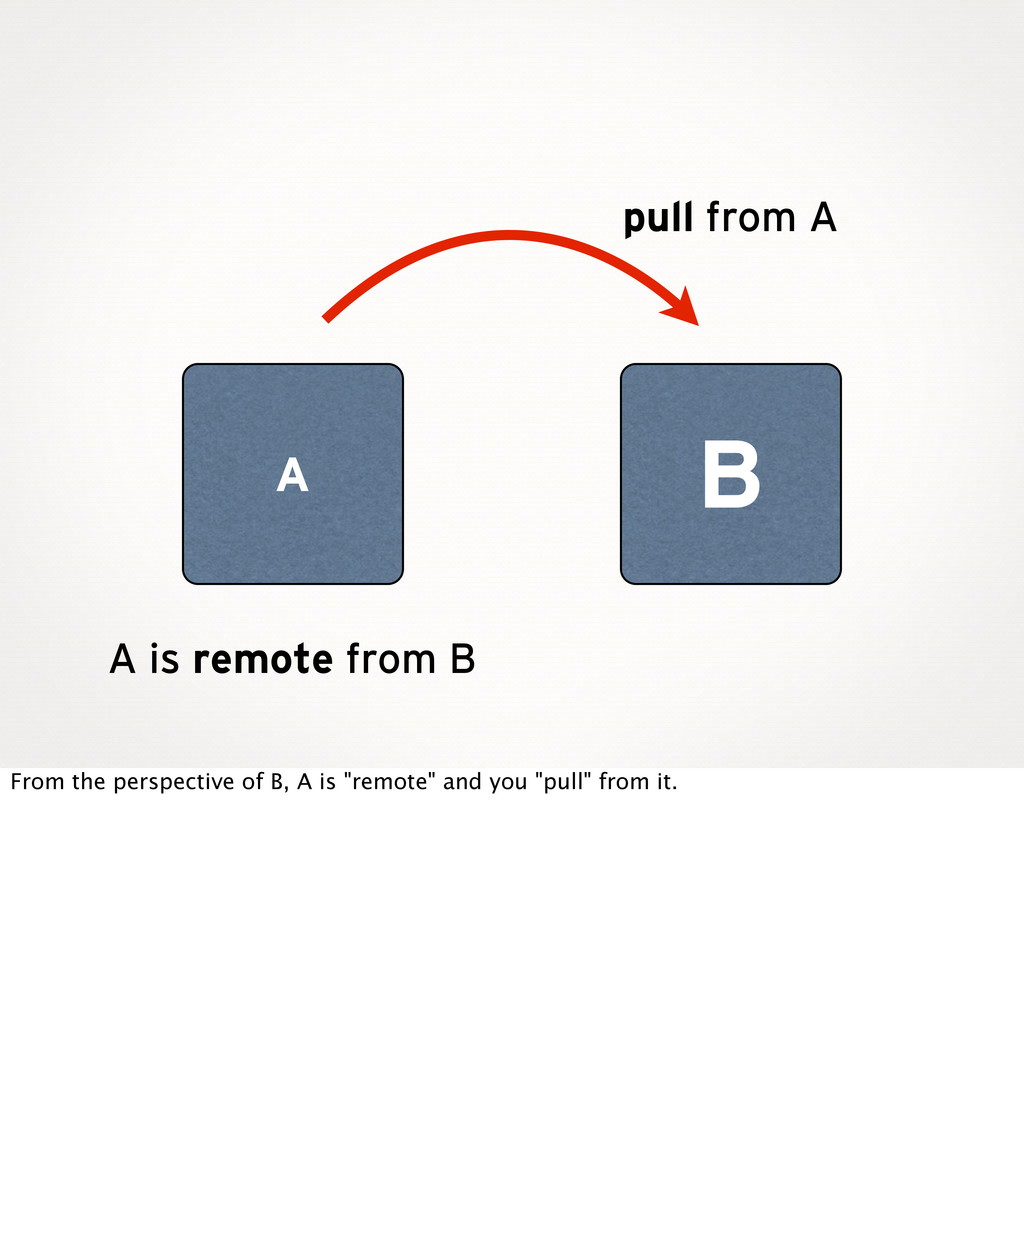 B A A is remote from B pull from A From the per...